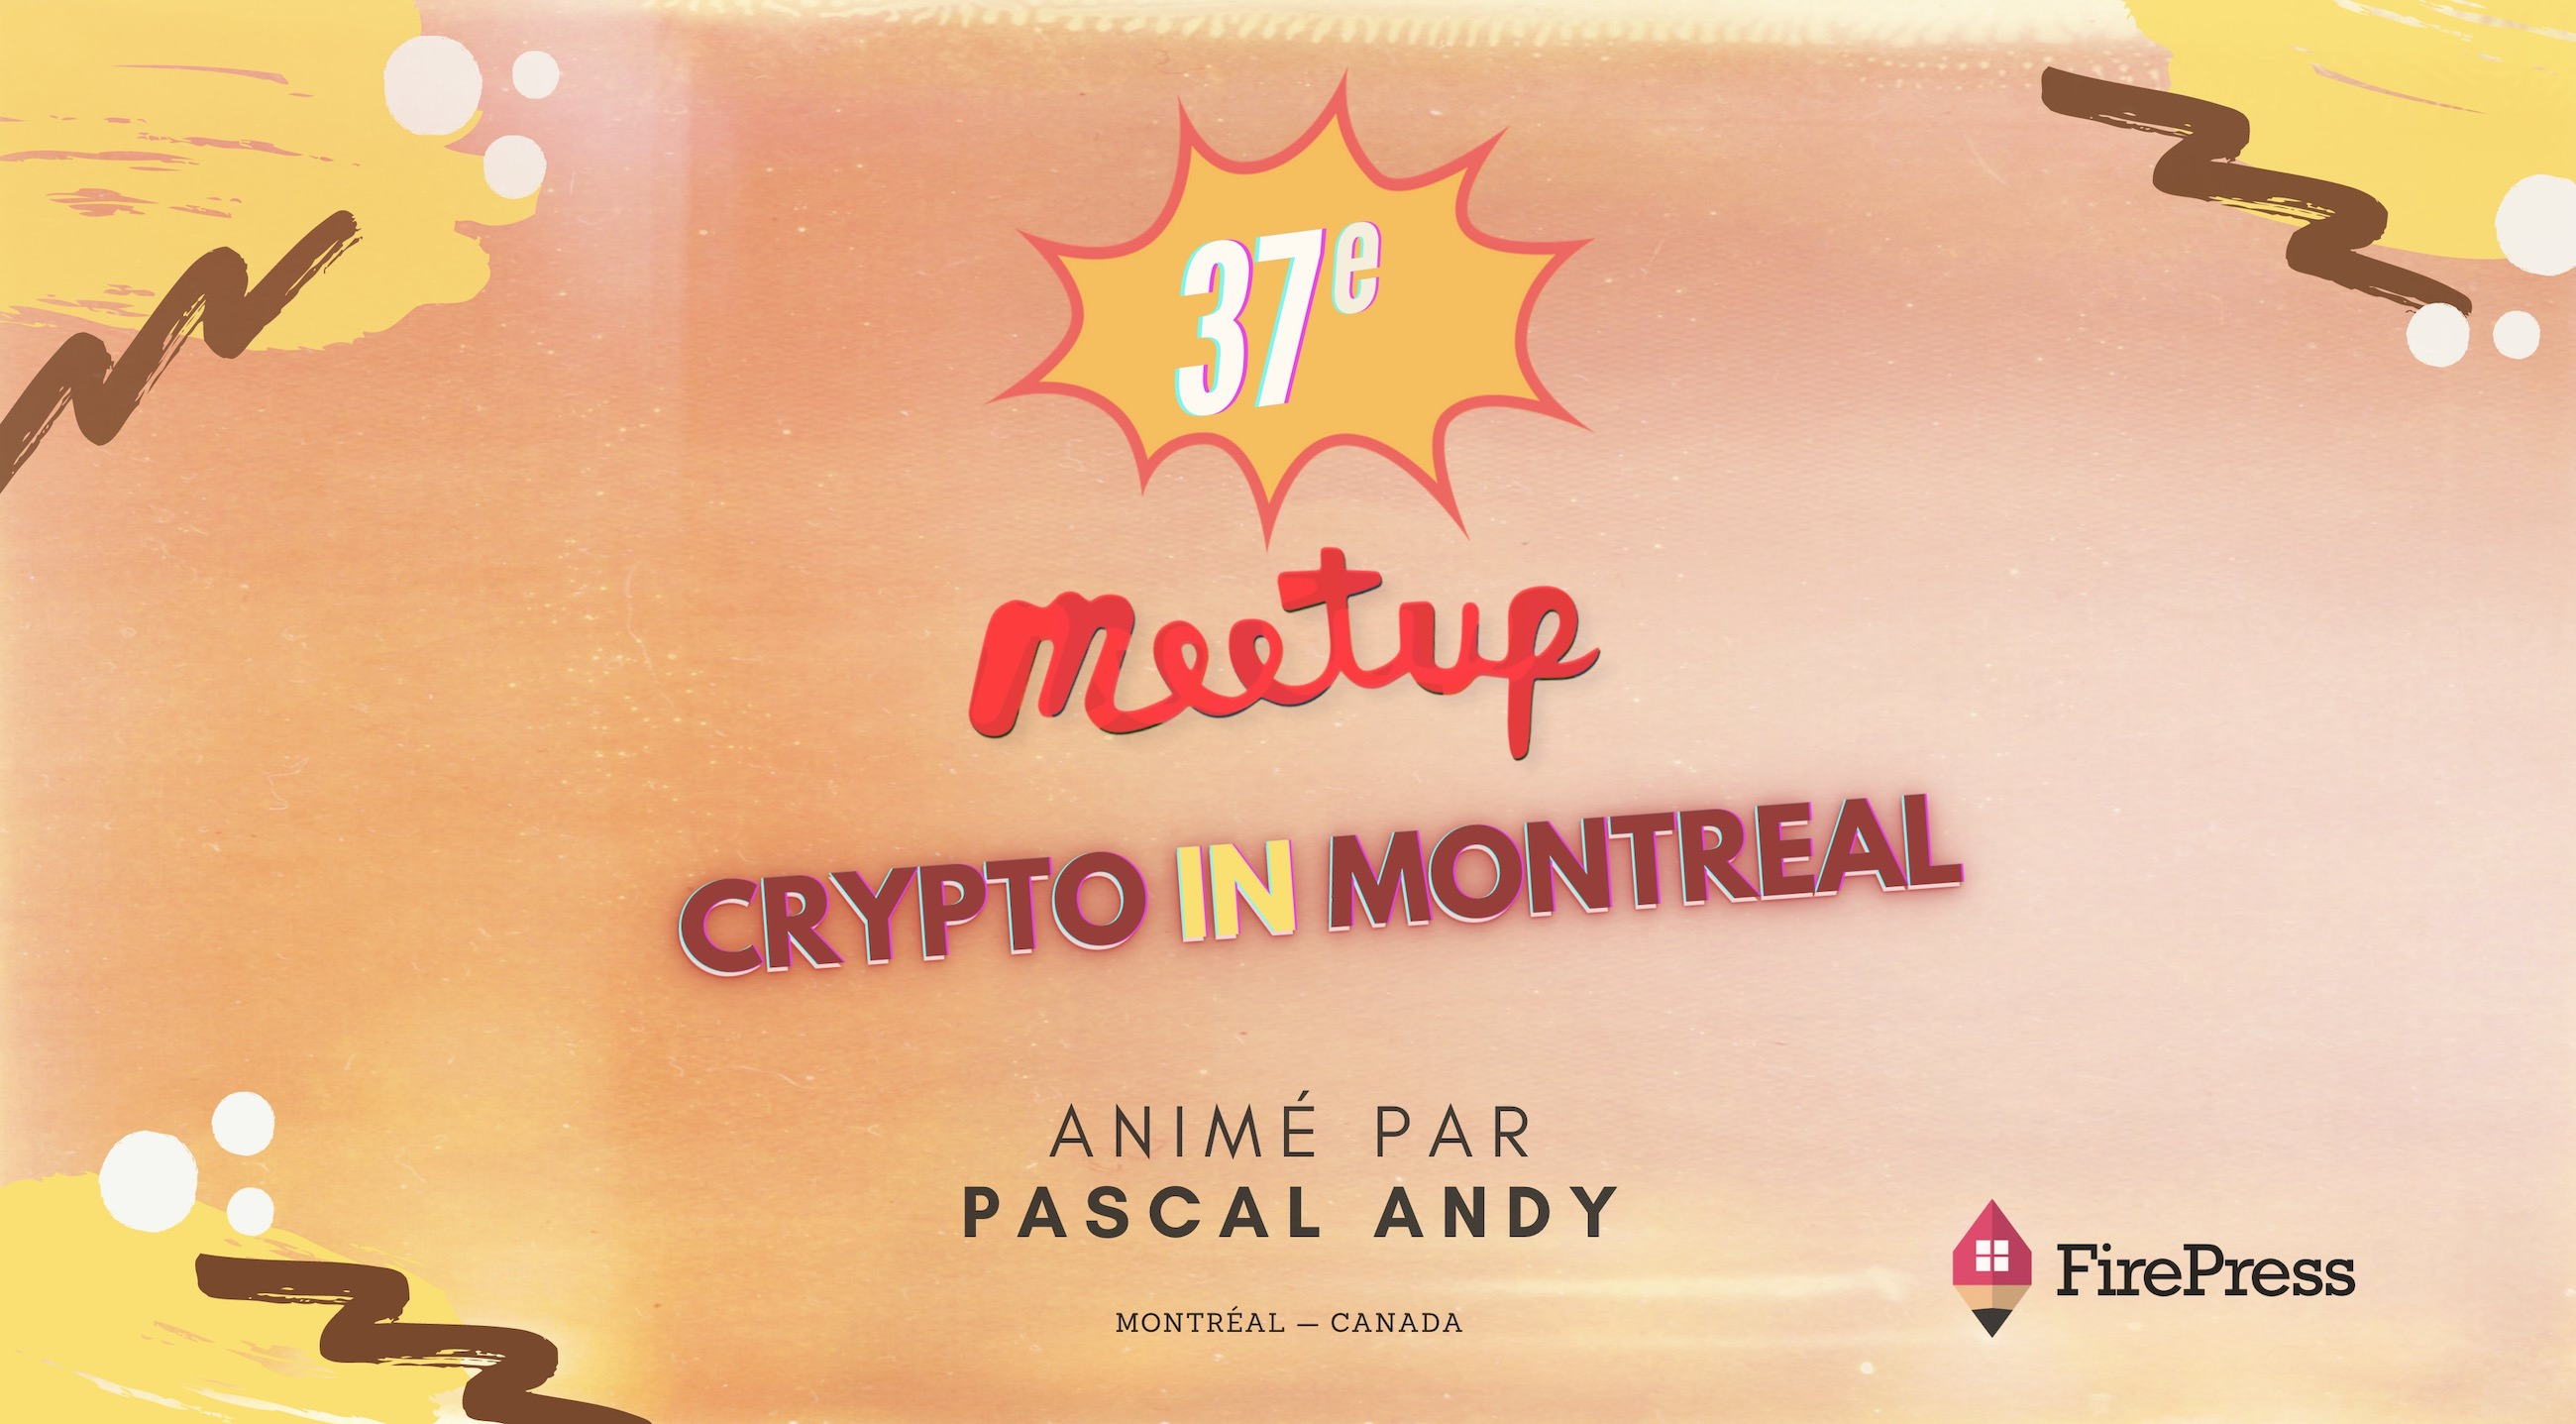 Bring your laptop! Intro to Solidity on Ethereum and Smart Contracts at CryptoInMontreal #37